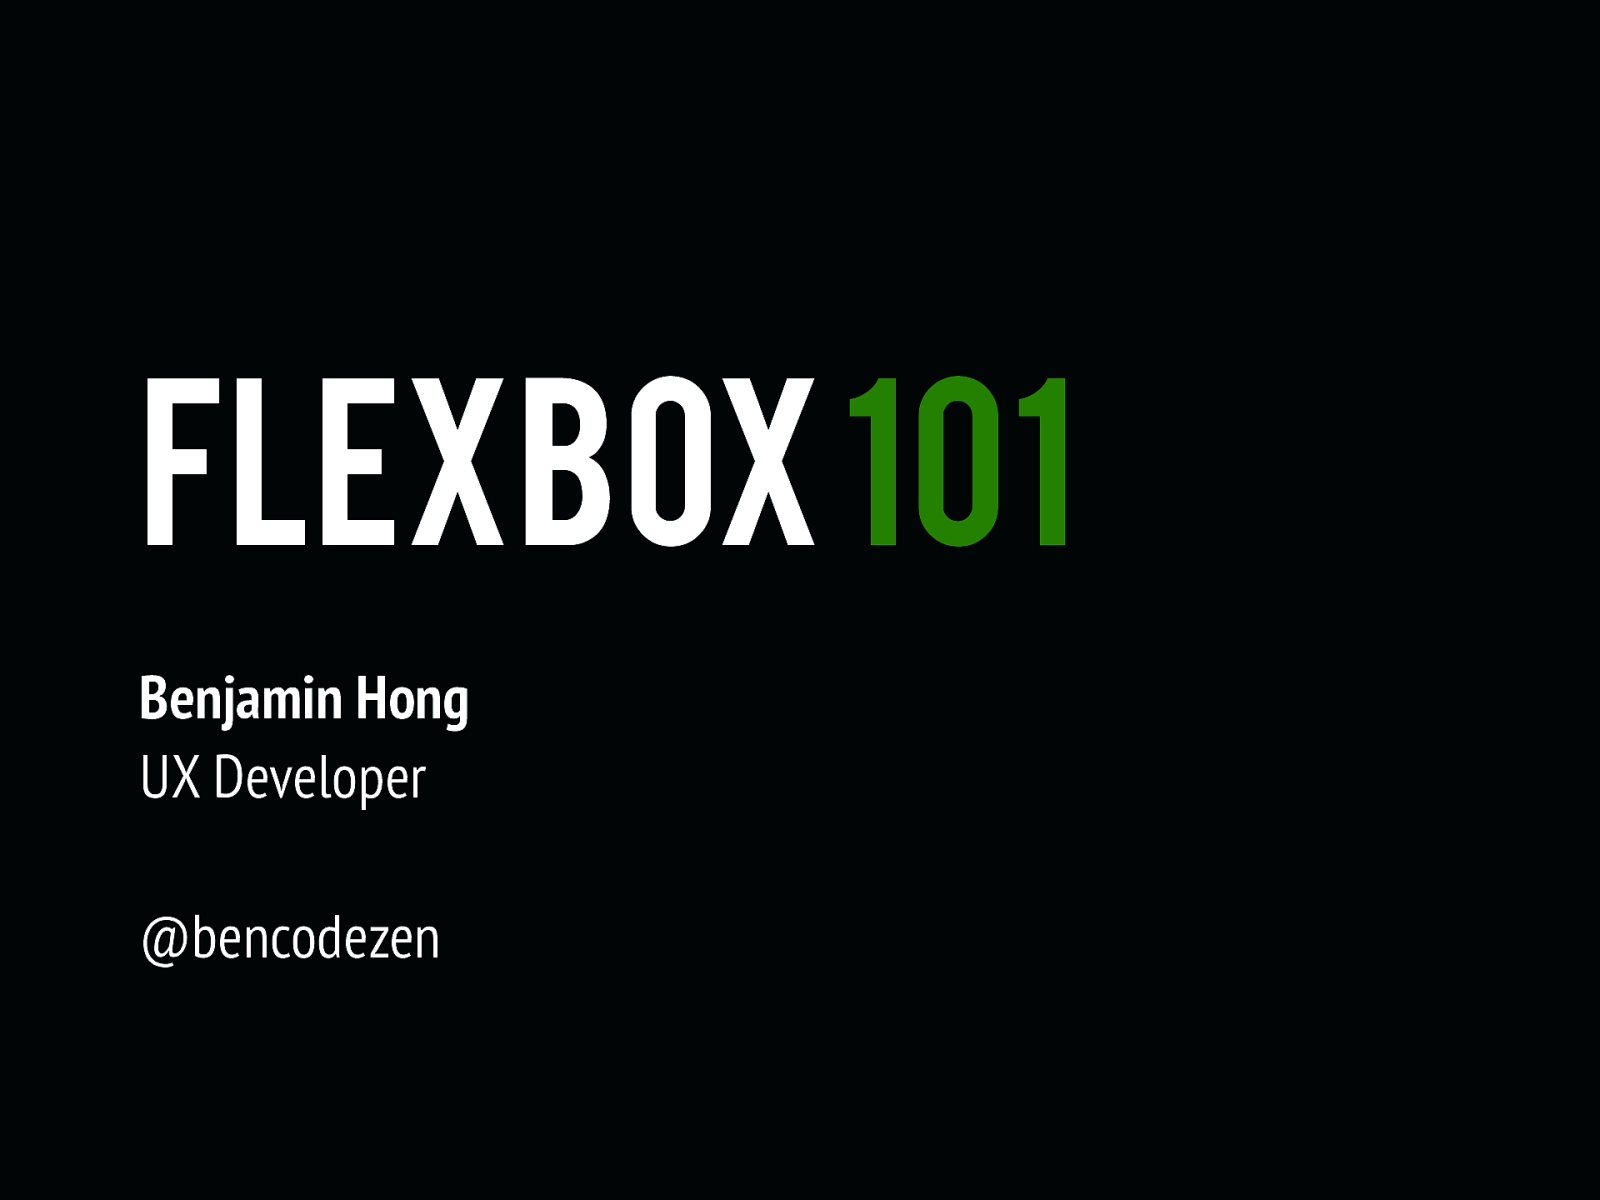 Workshop: Flexbox 101